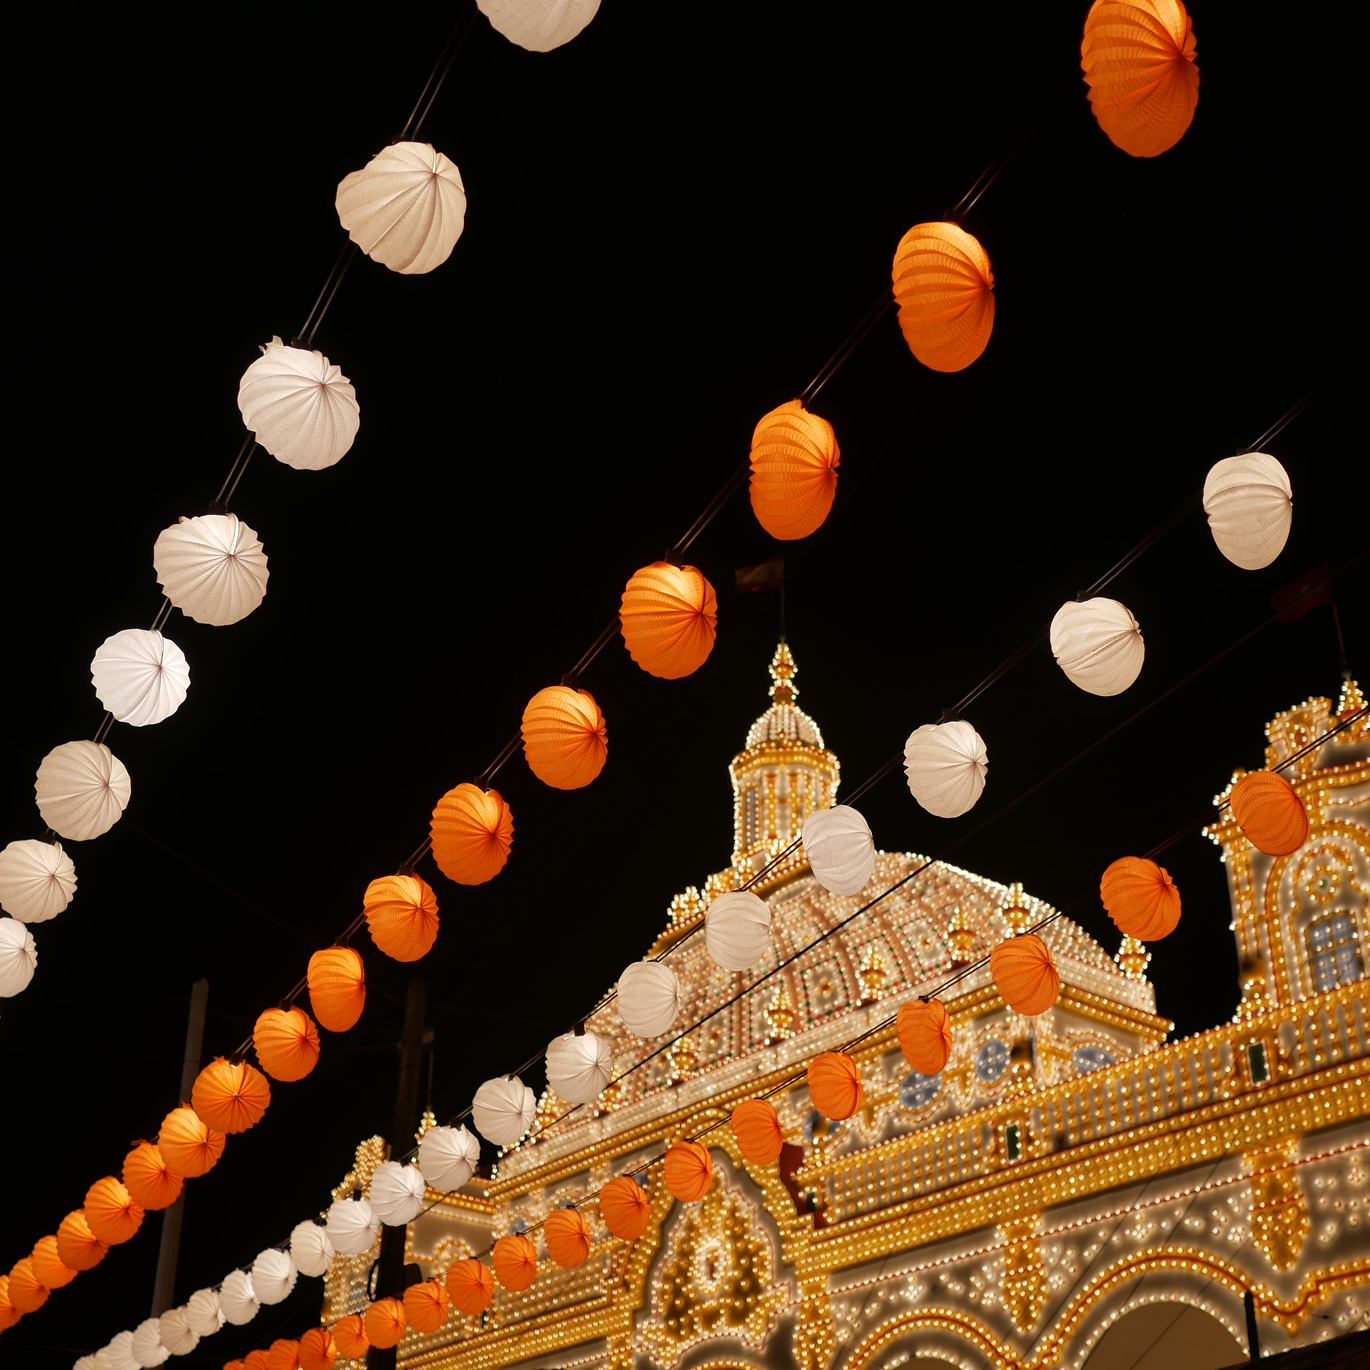 Those orange and white lanterns really completed the festival atmosphere.